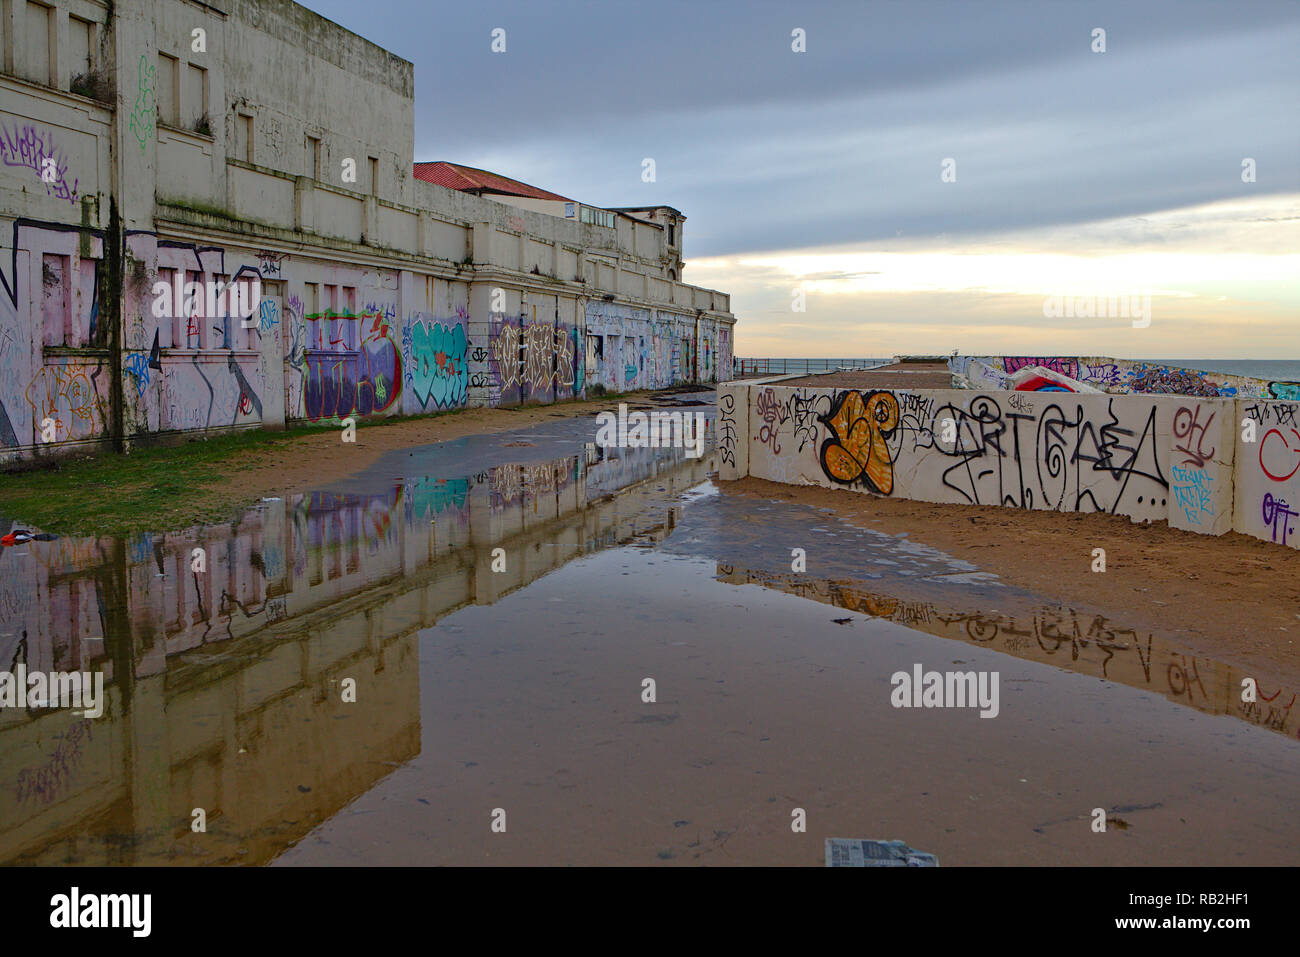 Graffiti on concrete walls on a rainy day by the sea in Margate - Stock Image